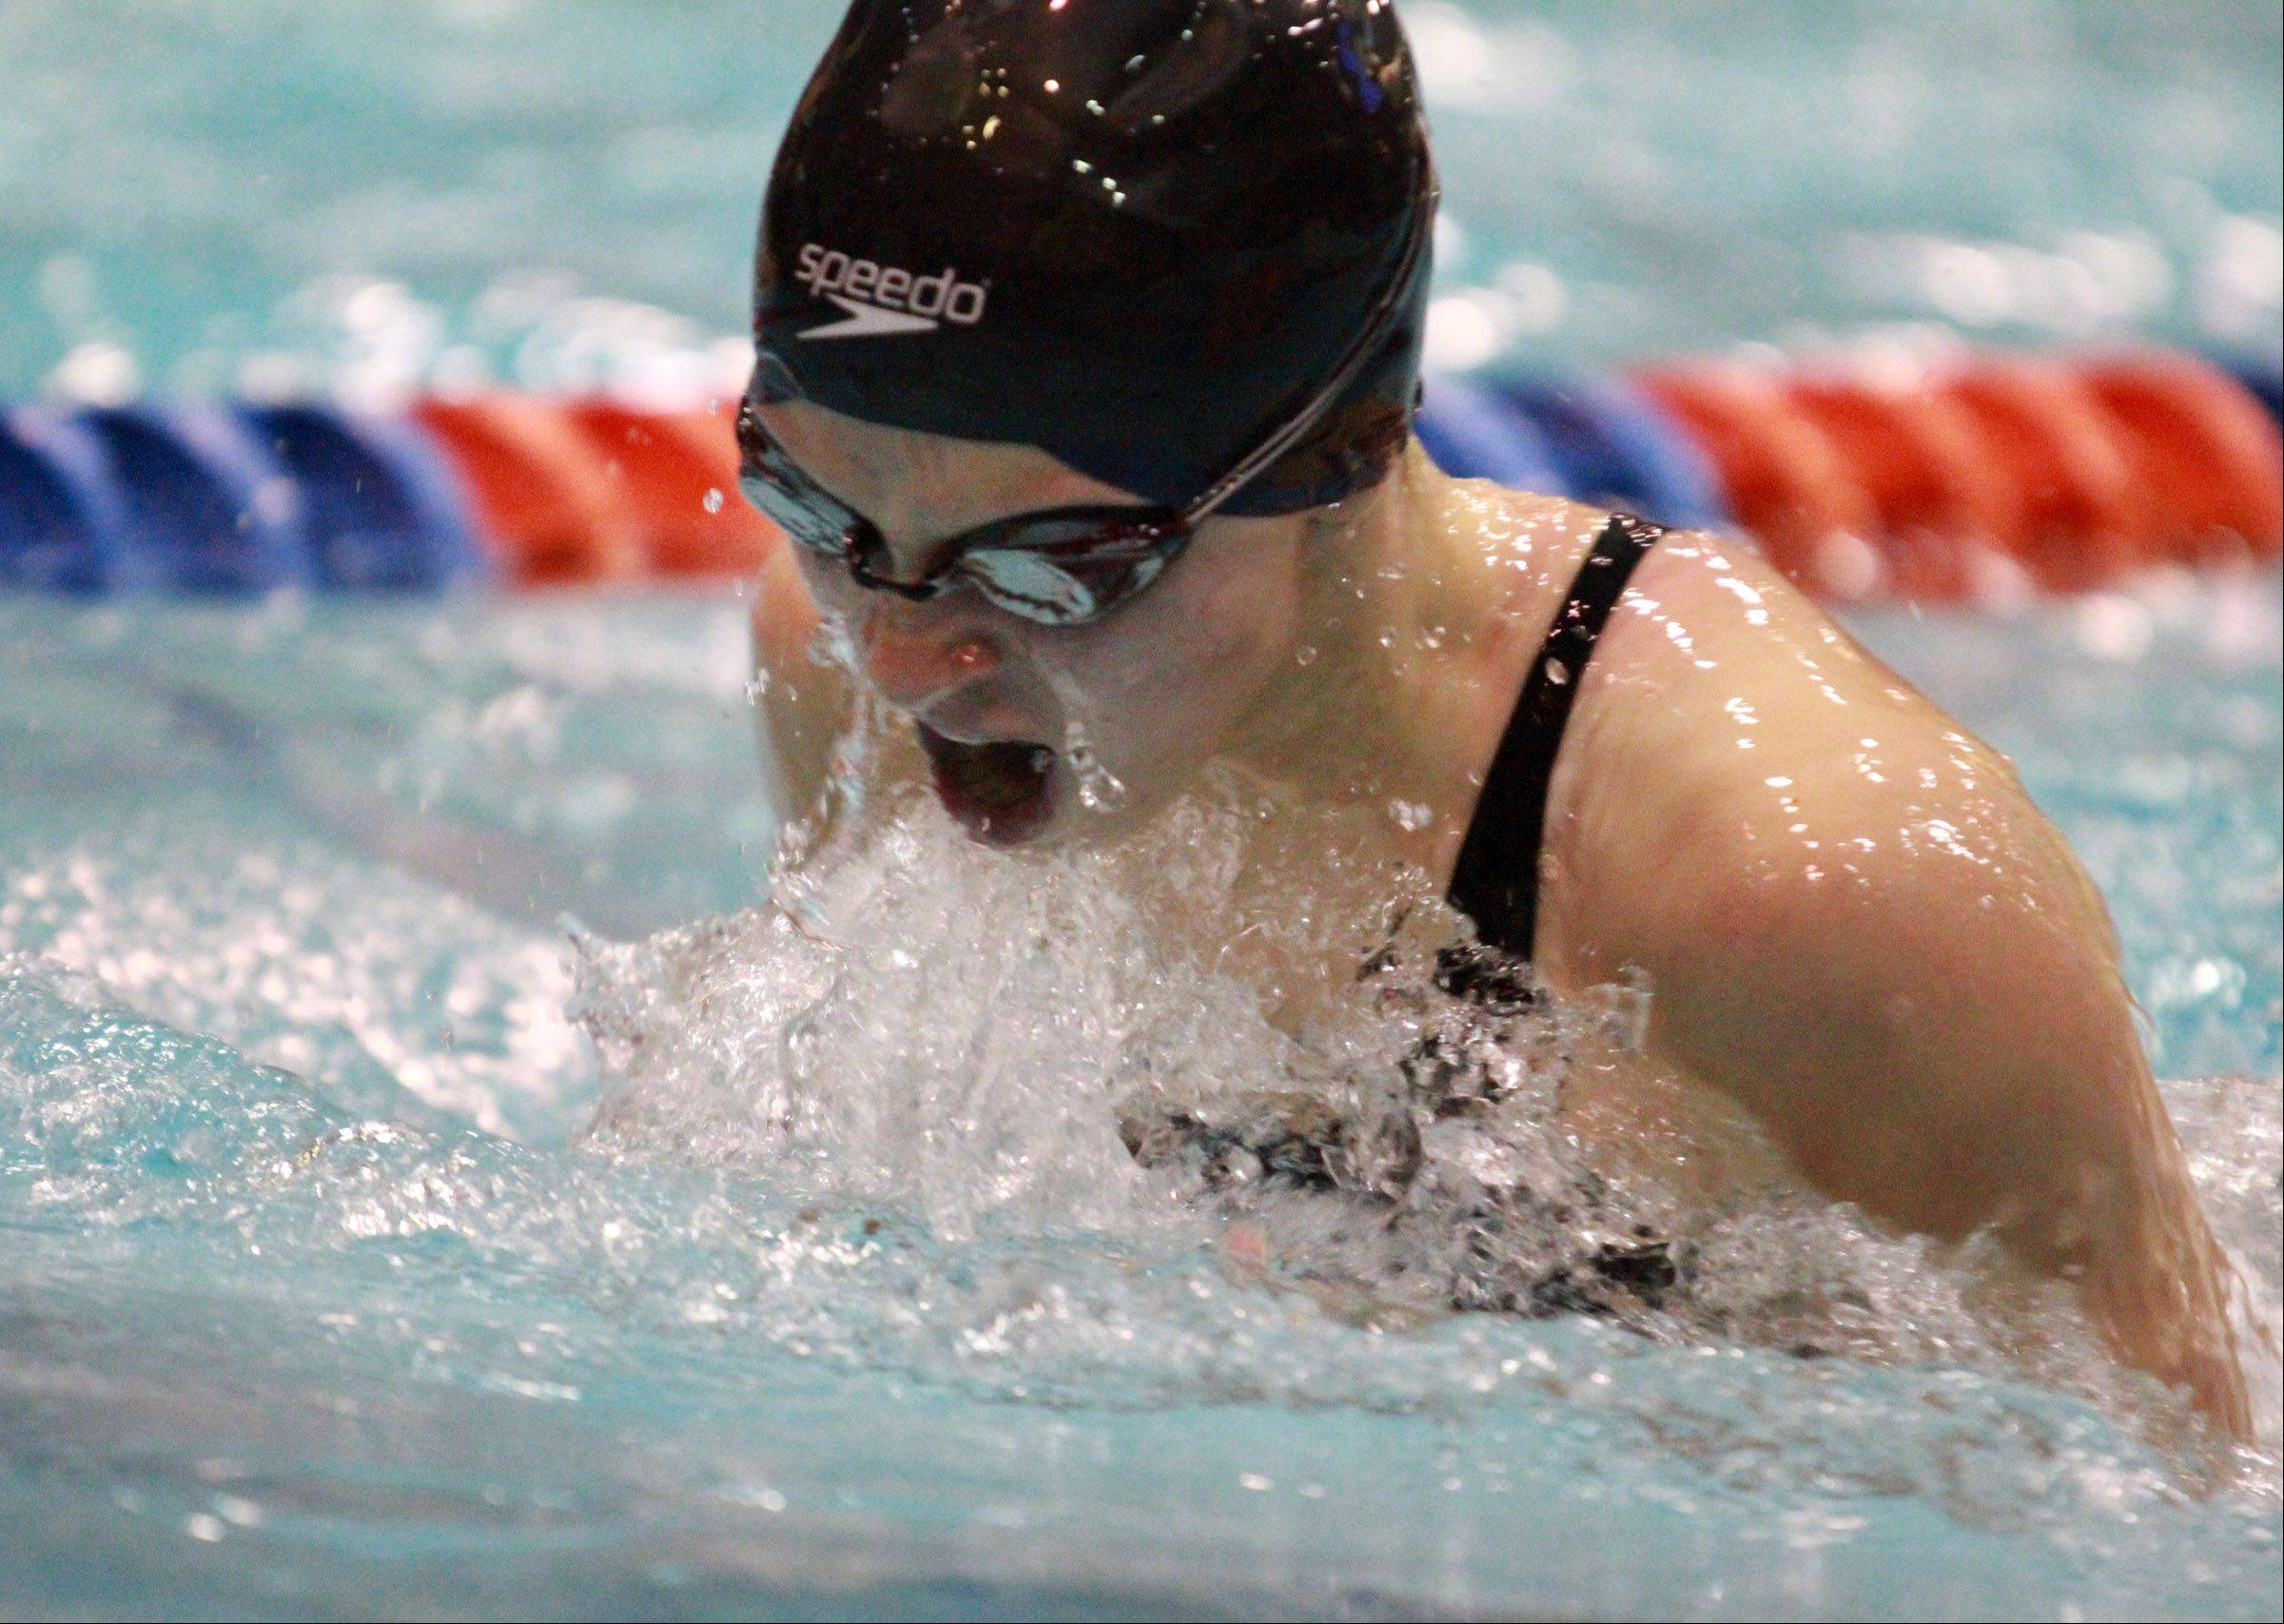 Cary-Grove's Melissa Rose swims the 100-yard breaststroke at state preliminaries in Evanston last season. She will compete at the Barrington sectional on Saturday.